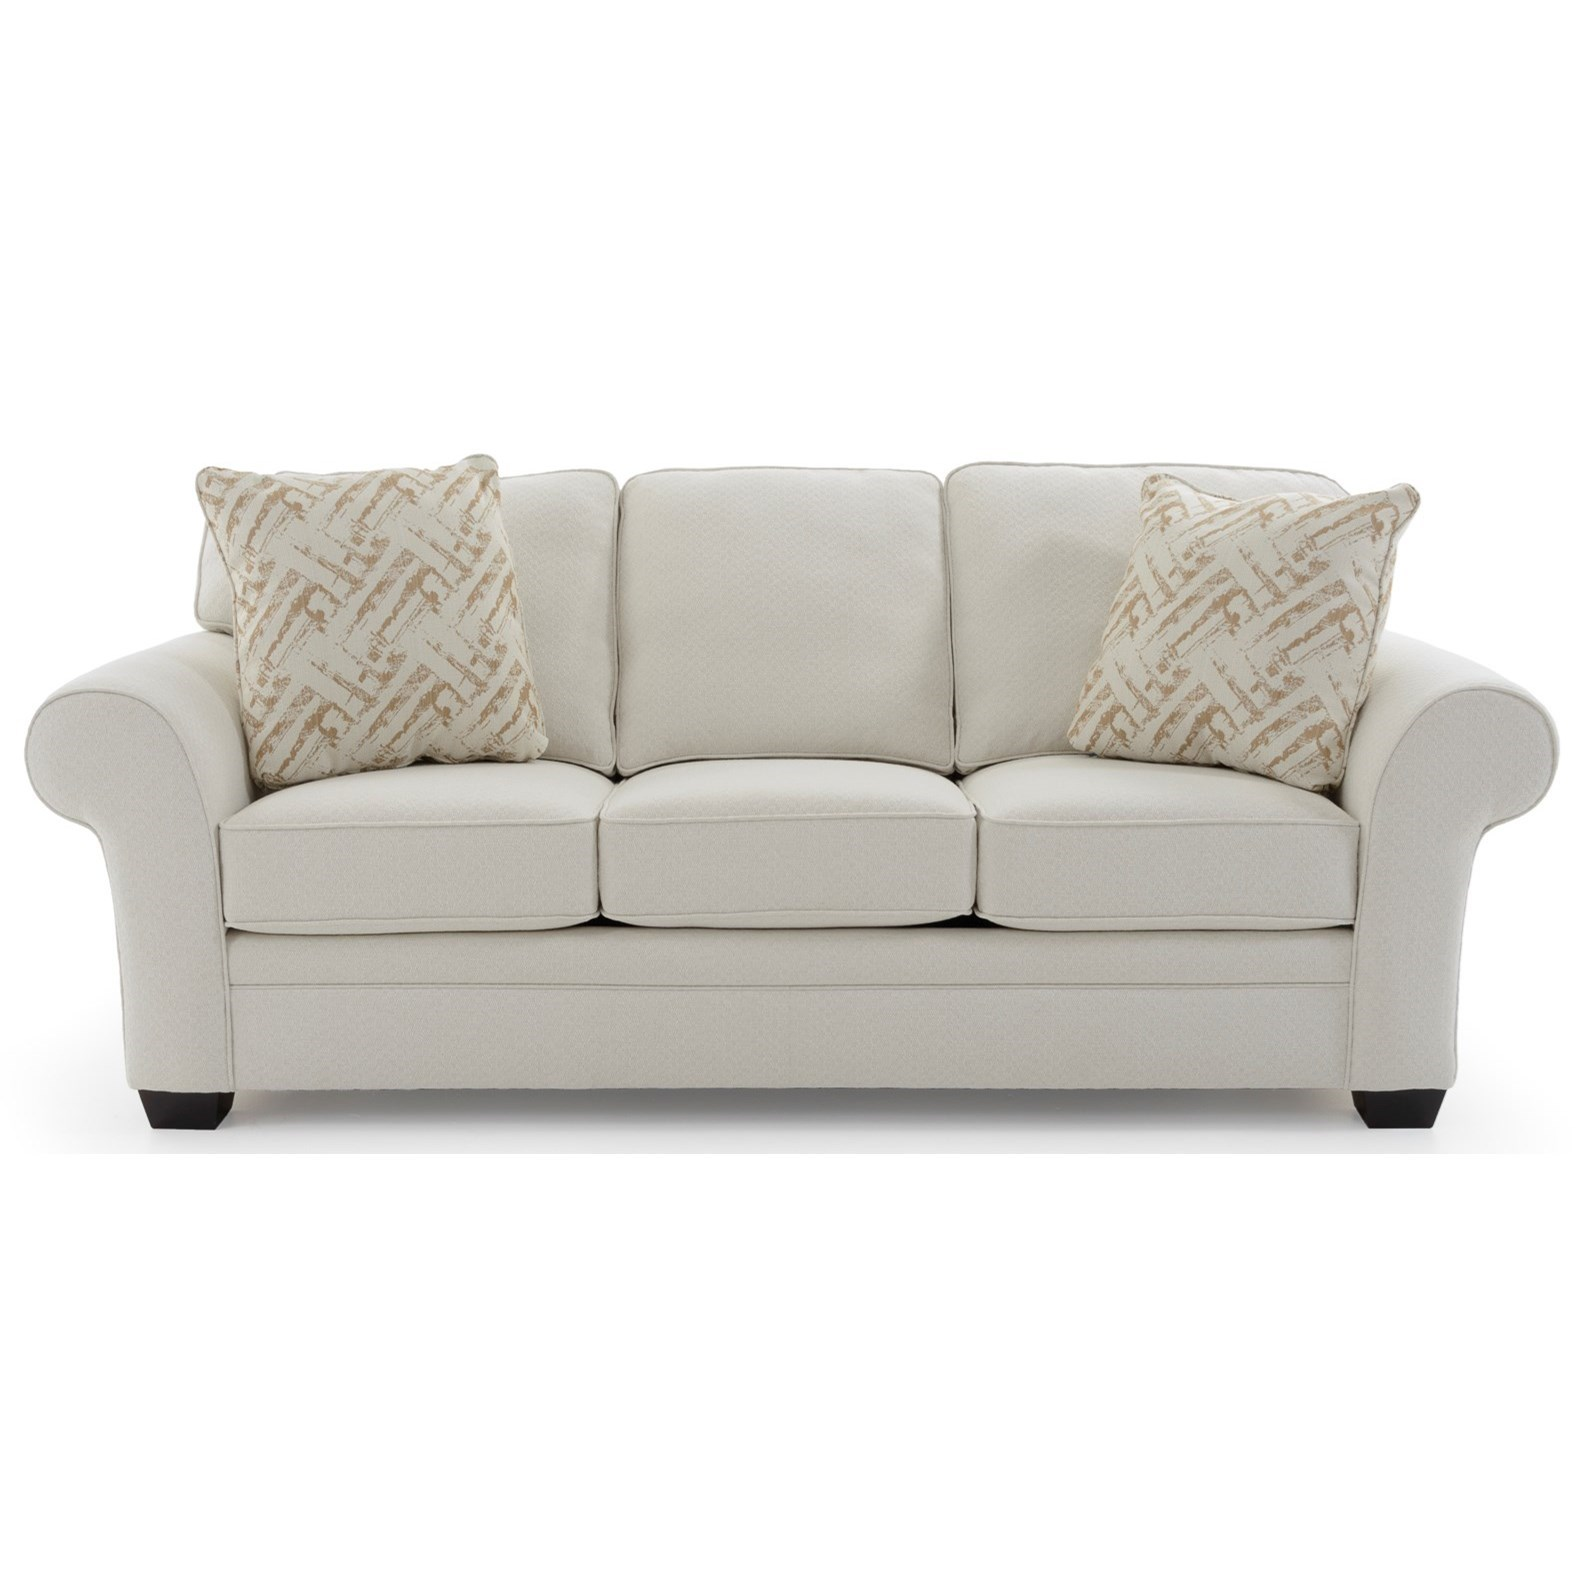 Broyhill Sofa Harrison Sofa By Broyhill Home Gallery S